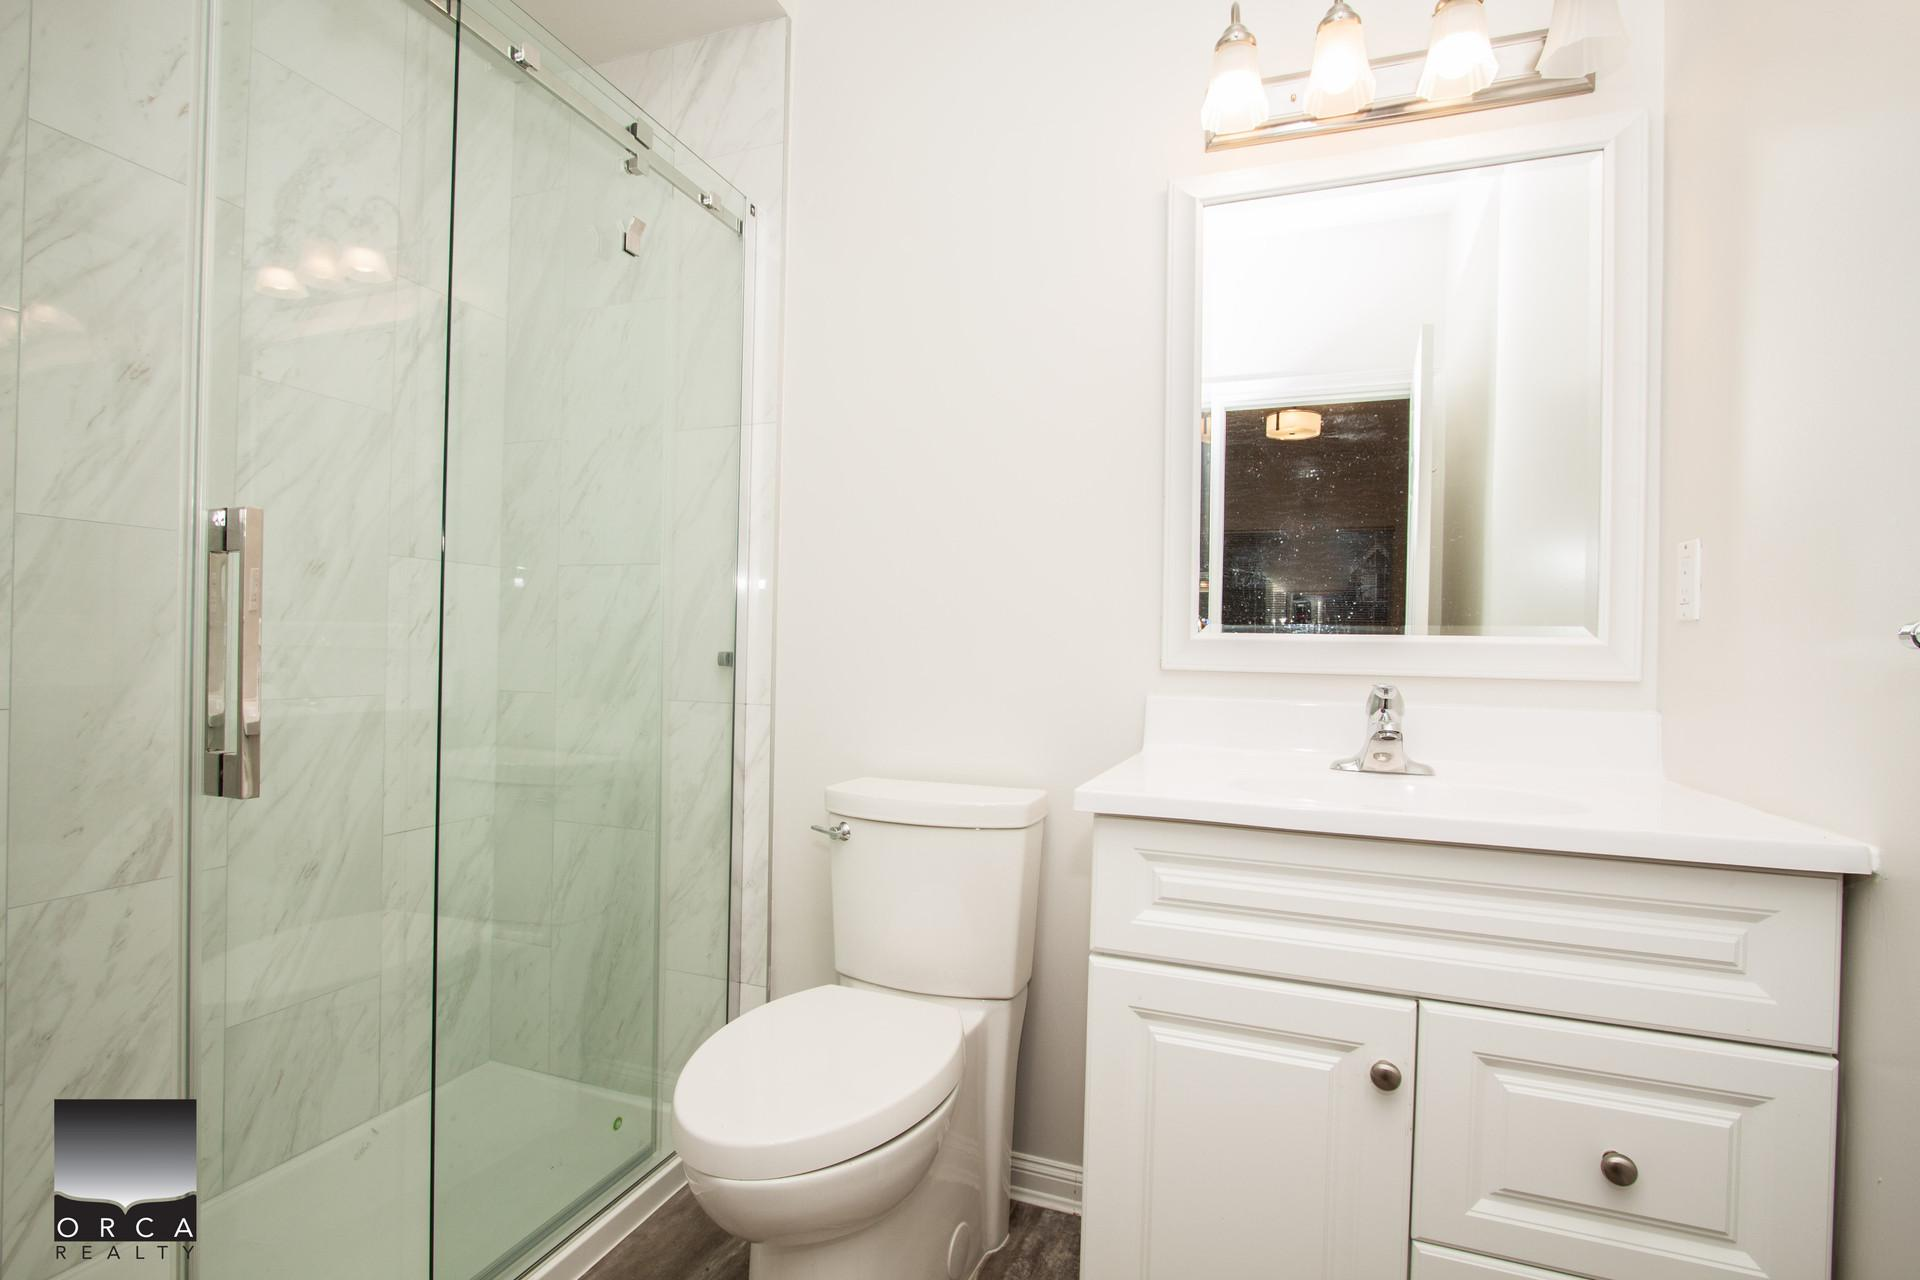 (ORCA_REF#936A)***1000 SQFT - BRIGHT - NEWLY RENOVATED LOWER LONSDALE 2 BED/2BATH APARTMENT***